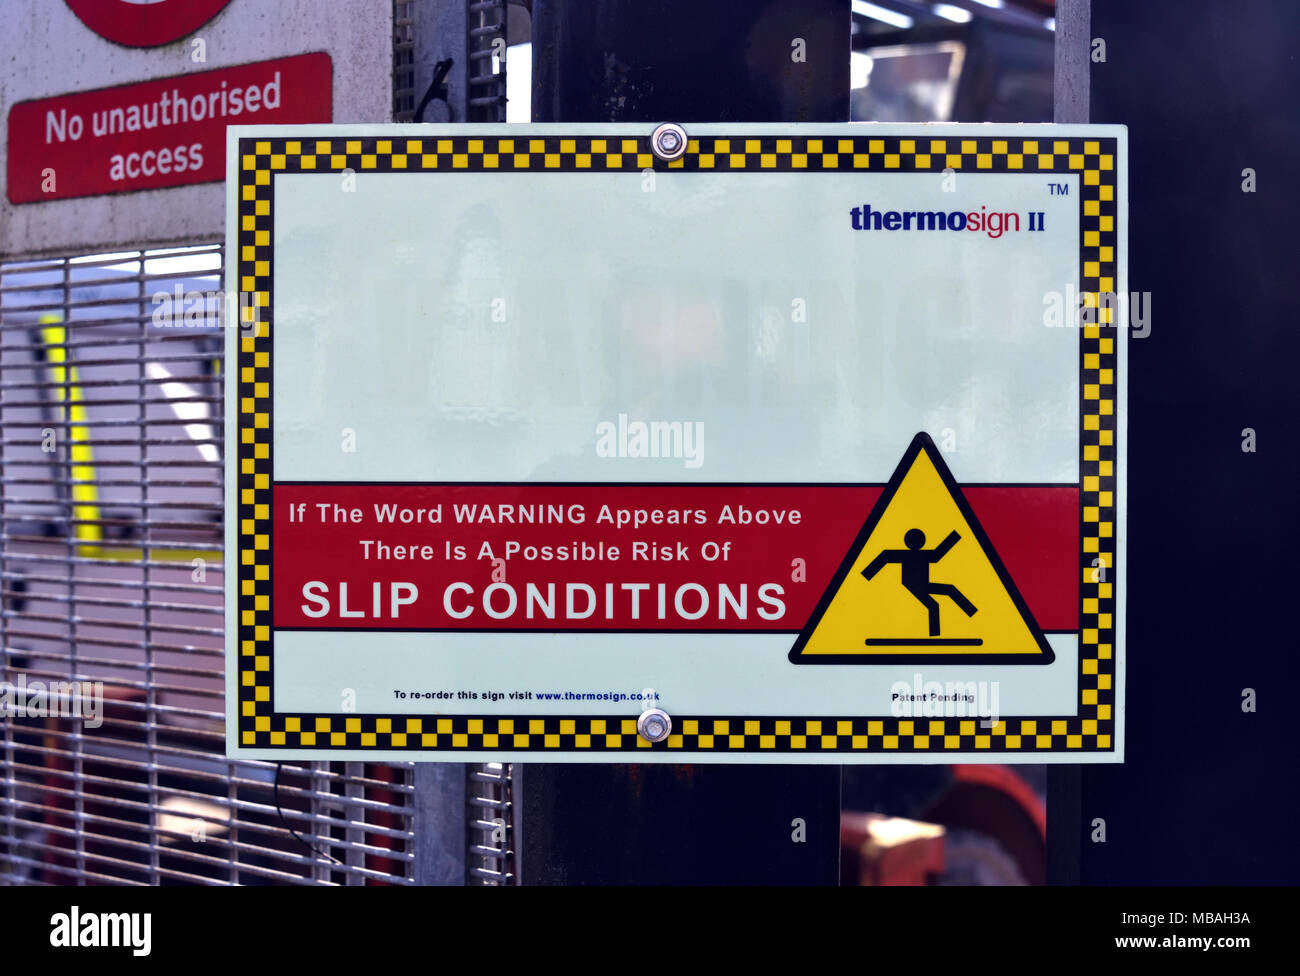 Thermosign II self-adhesive weather sign on backing board. Industrial site, Parkside Road, Kendal, Cumbria, England, United Kingdom, Europe. - Stock Image